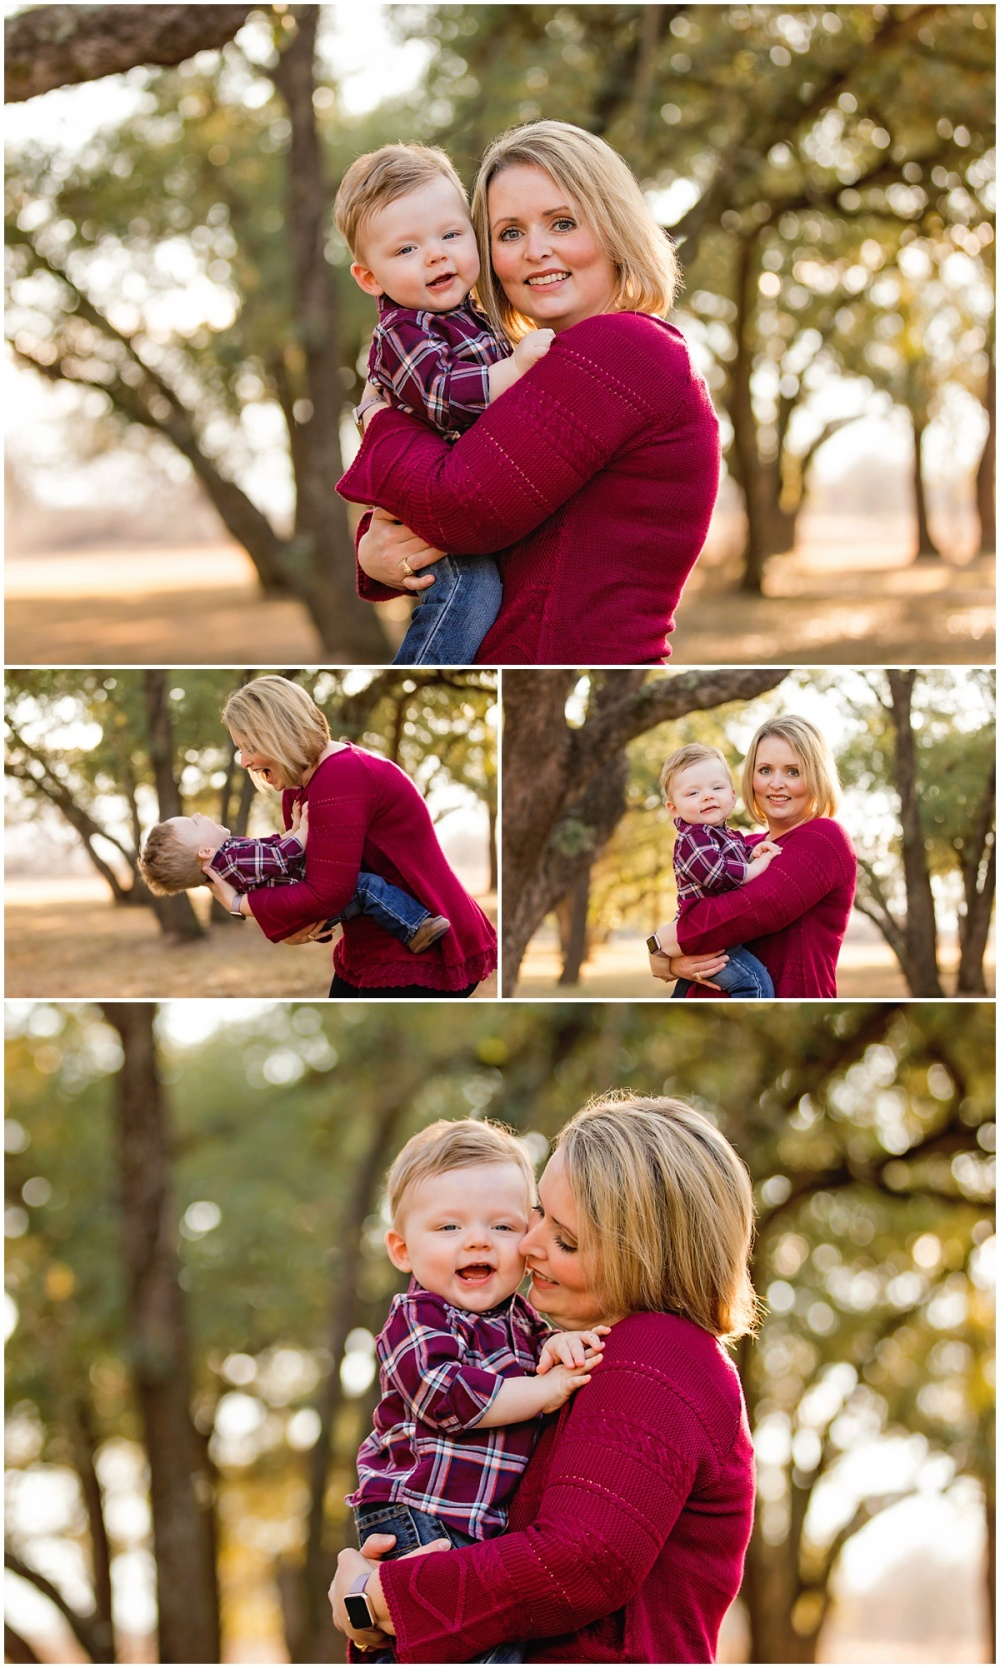 Family-Children-Maternity-Portraits-San-Antonio-Hill-Country-Texas-Carly-Barton-Photography_0112.jpg